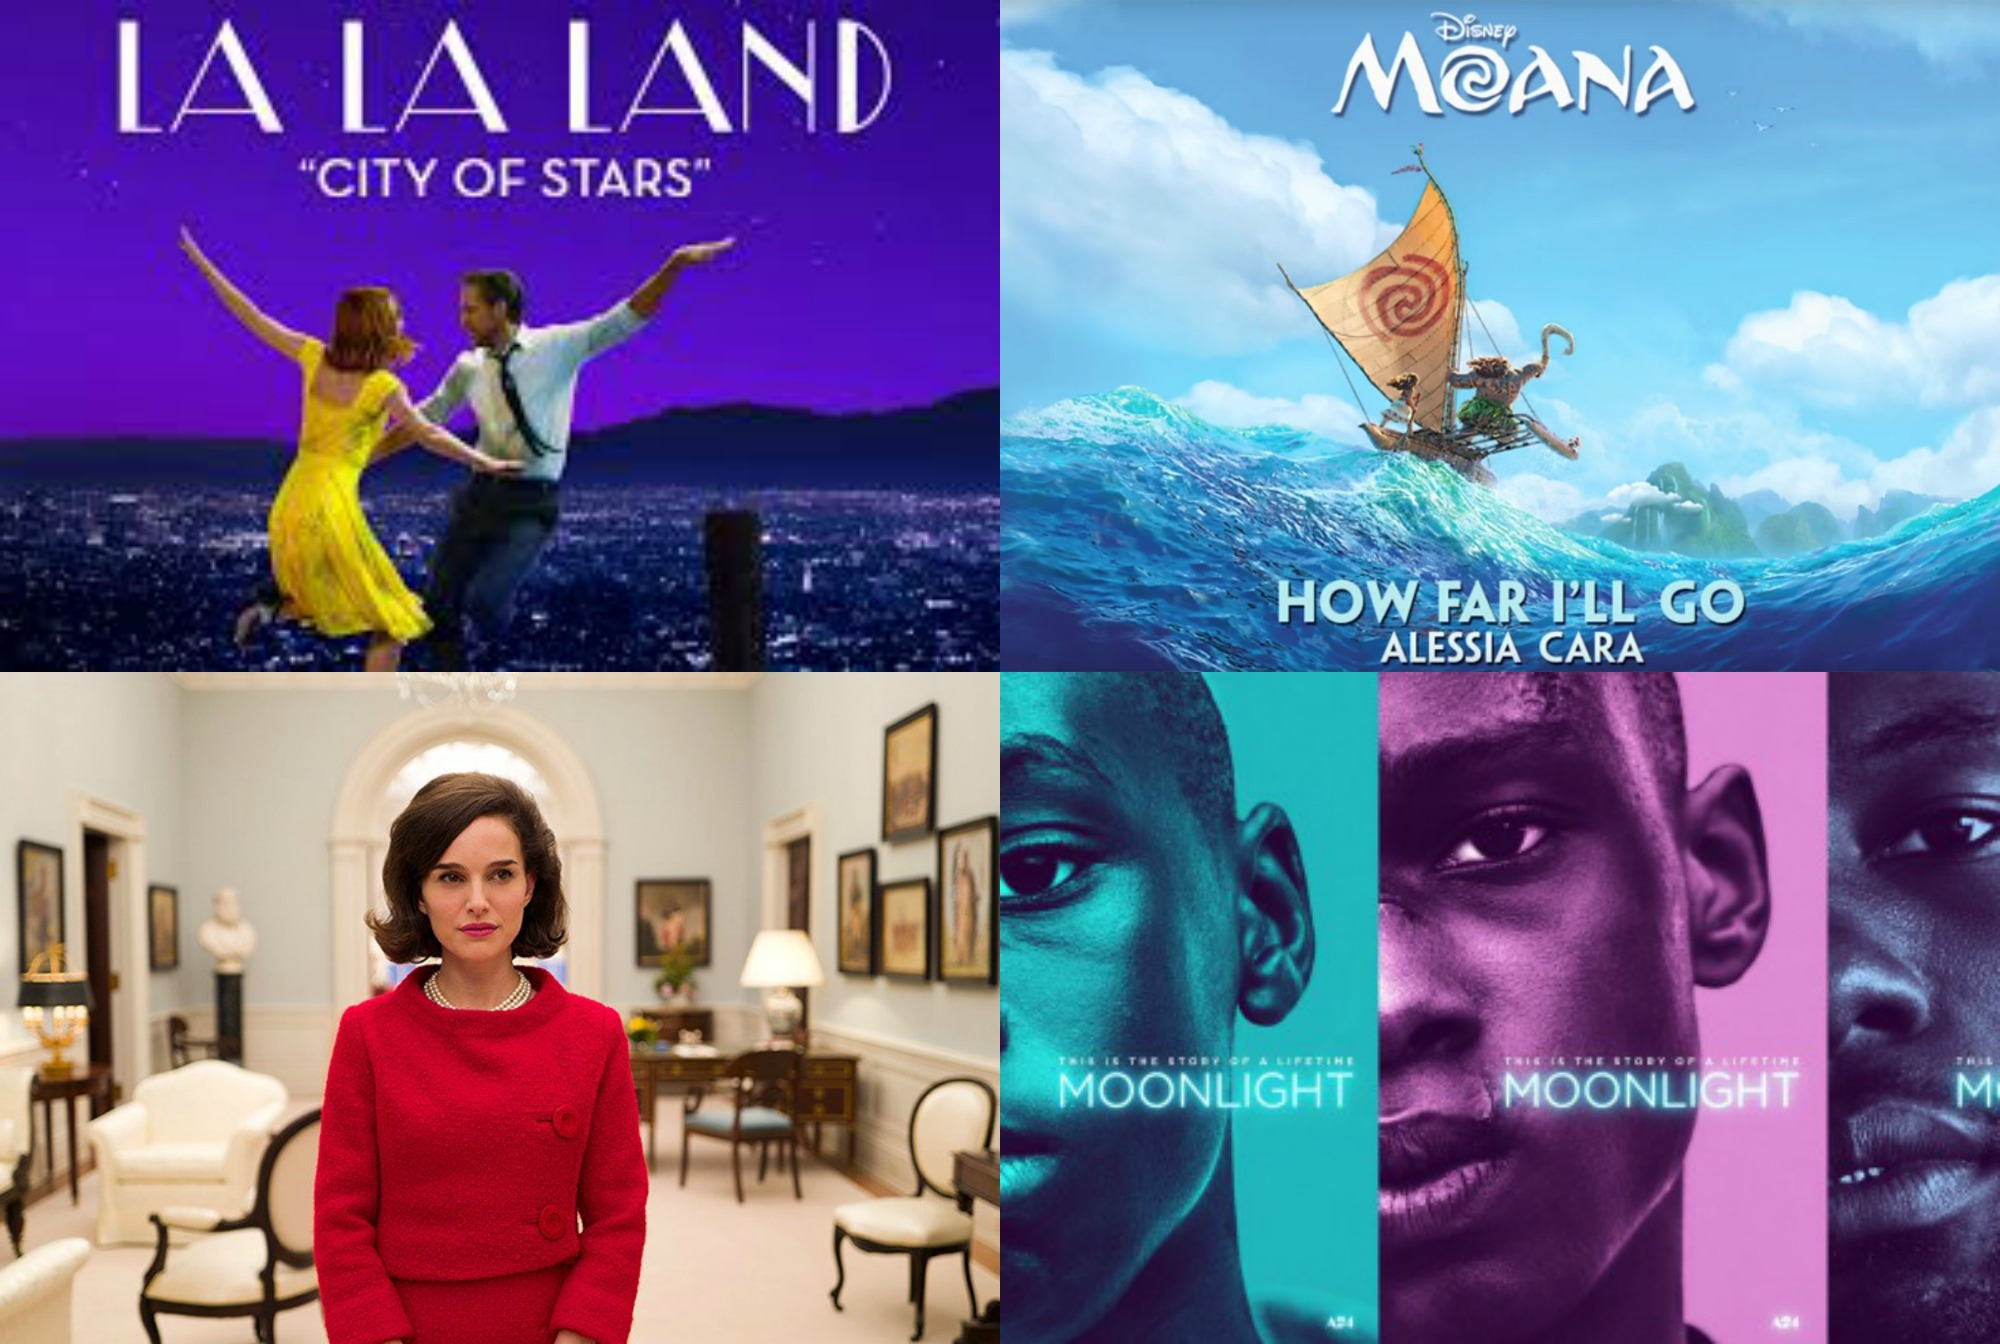 Oscars 2017: Listen to Songs and Scores Nominated for an